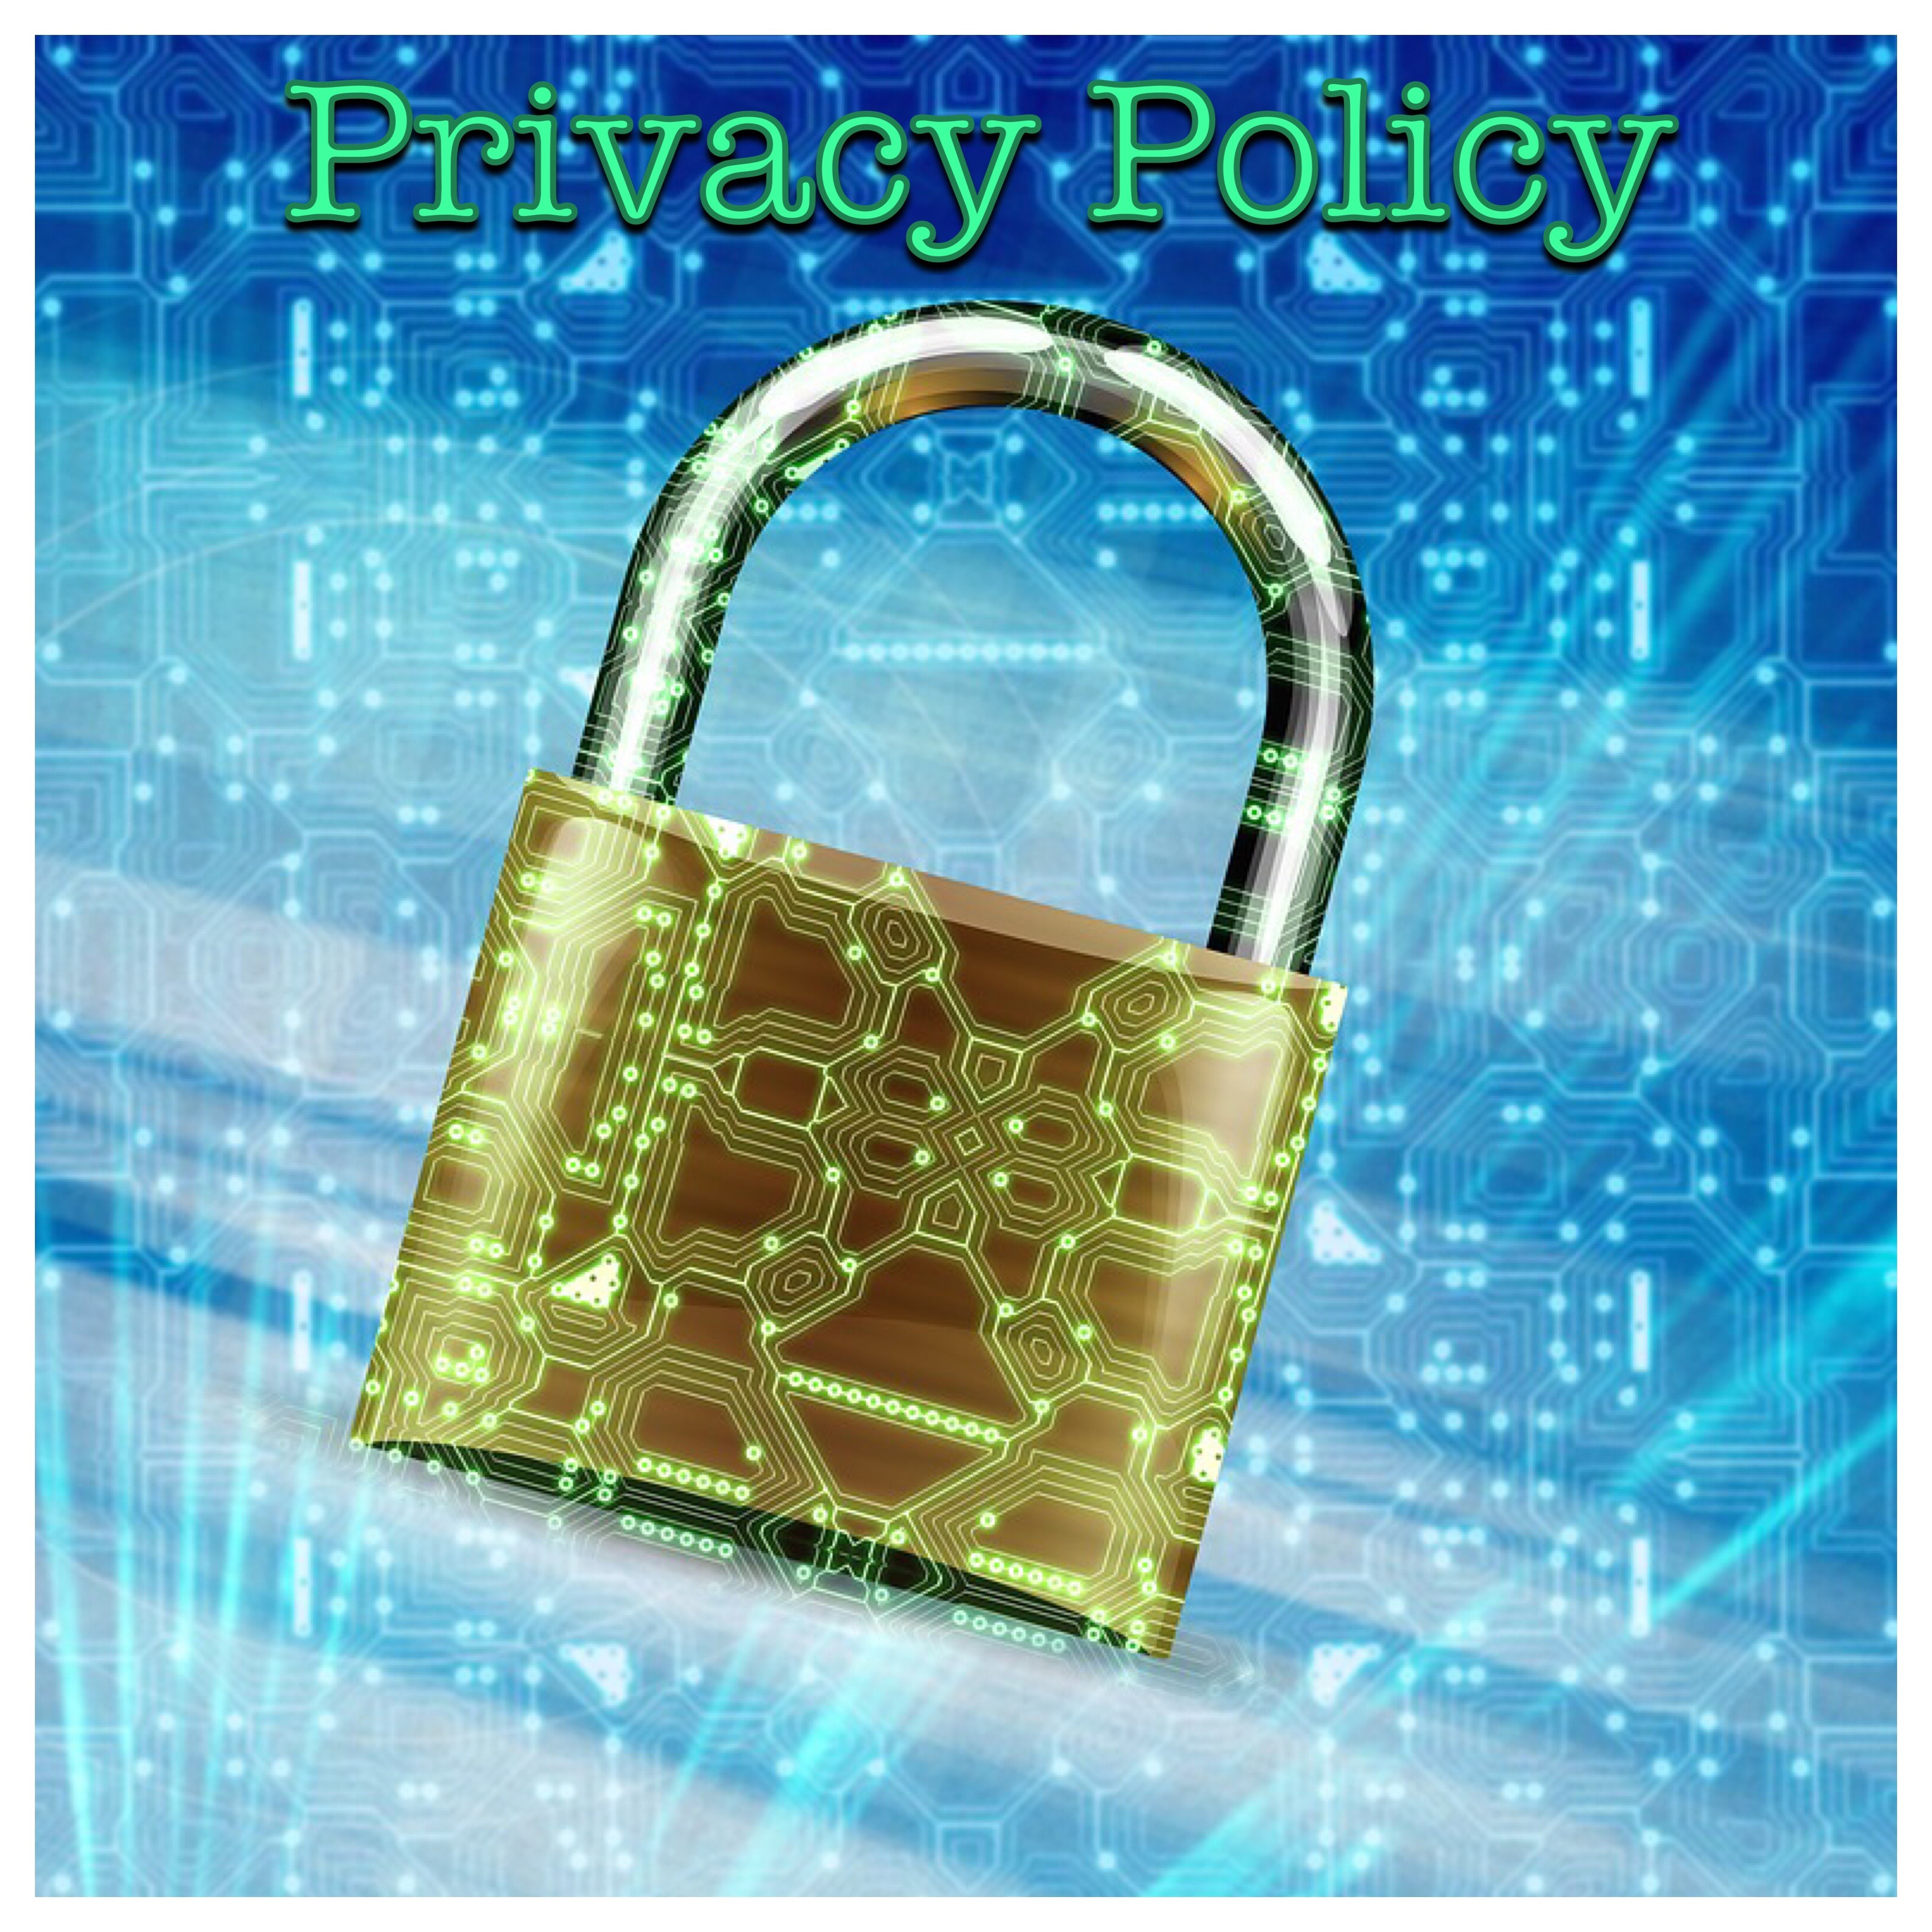 Privacy Policy Logo (padlock and computer circuitry)